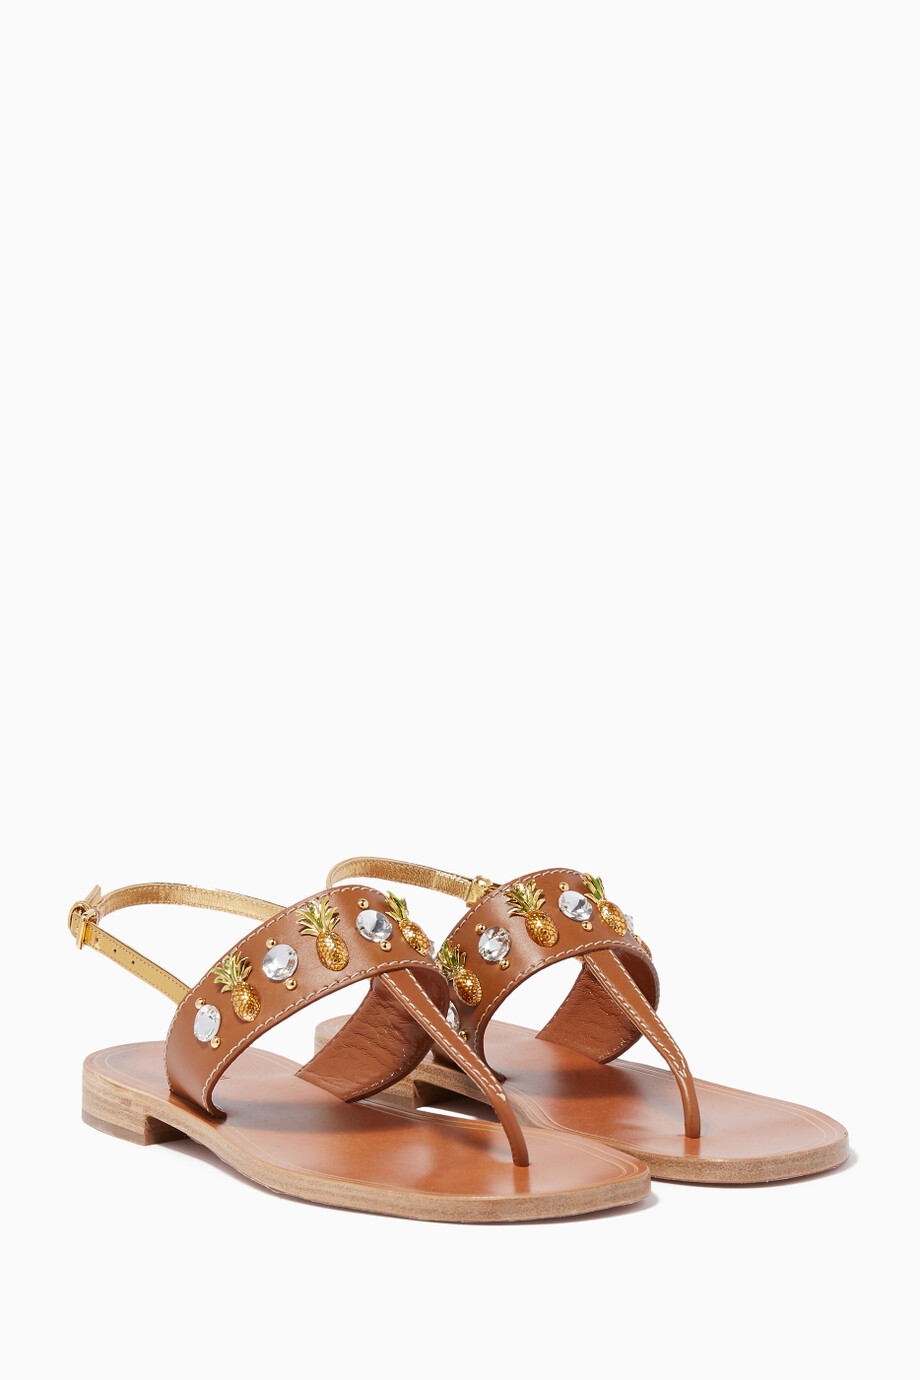 933d8dc14d2 Shop Miu Miu Brown Brown Crystal-Embellished Sandals for Women ...